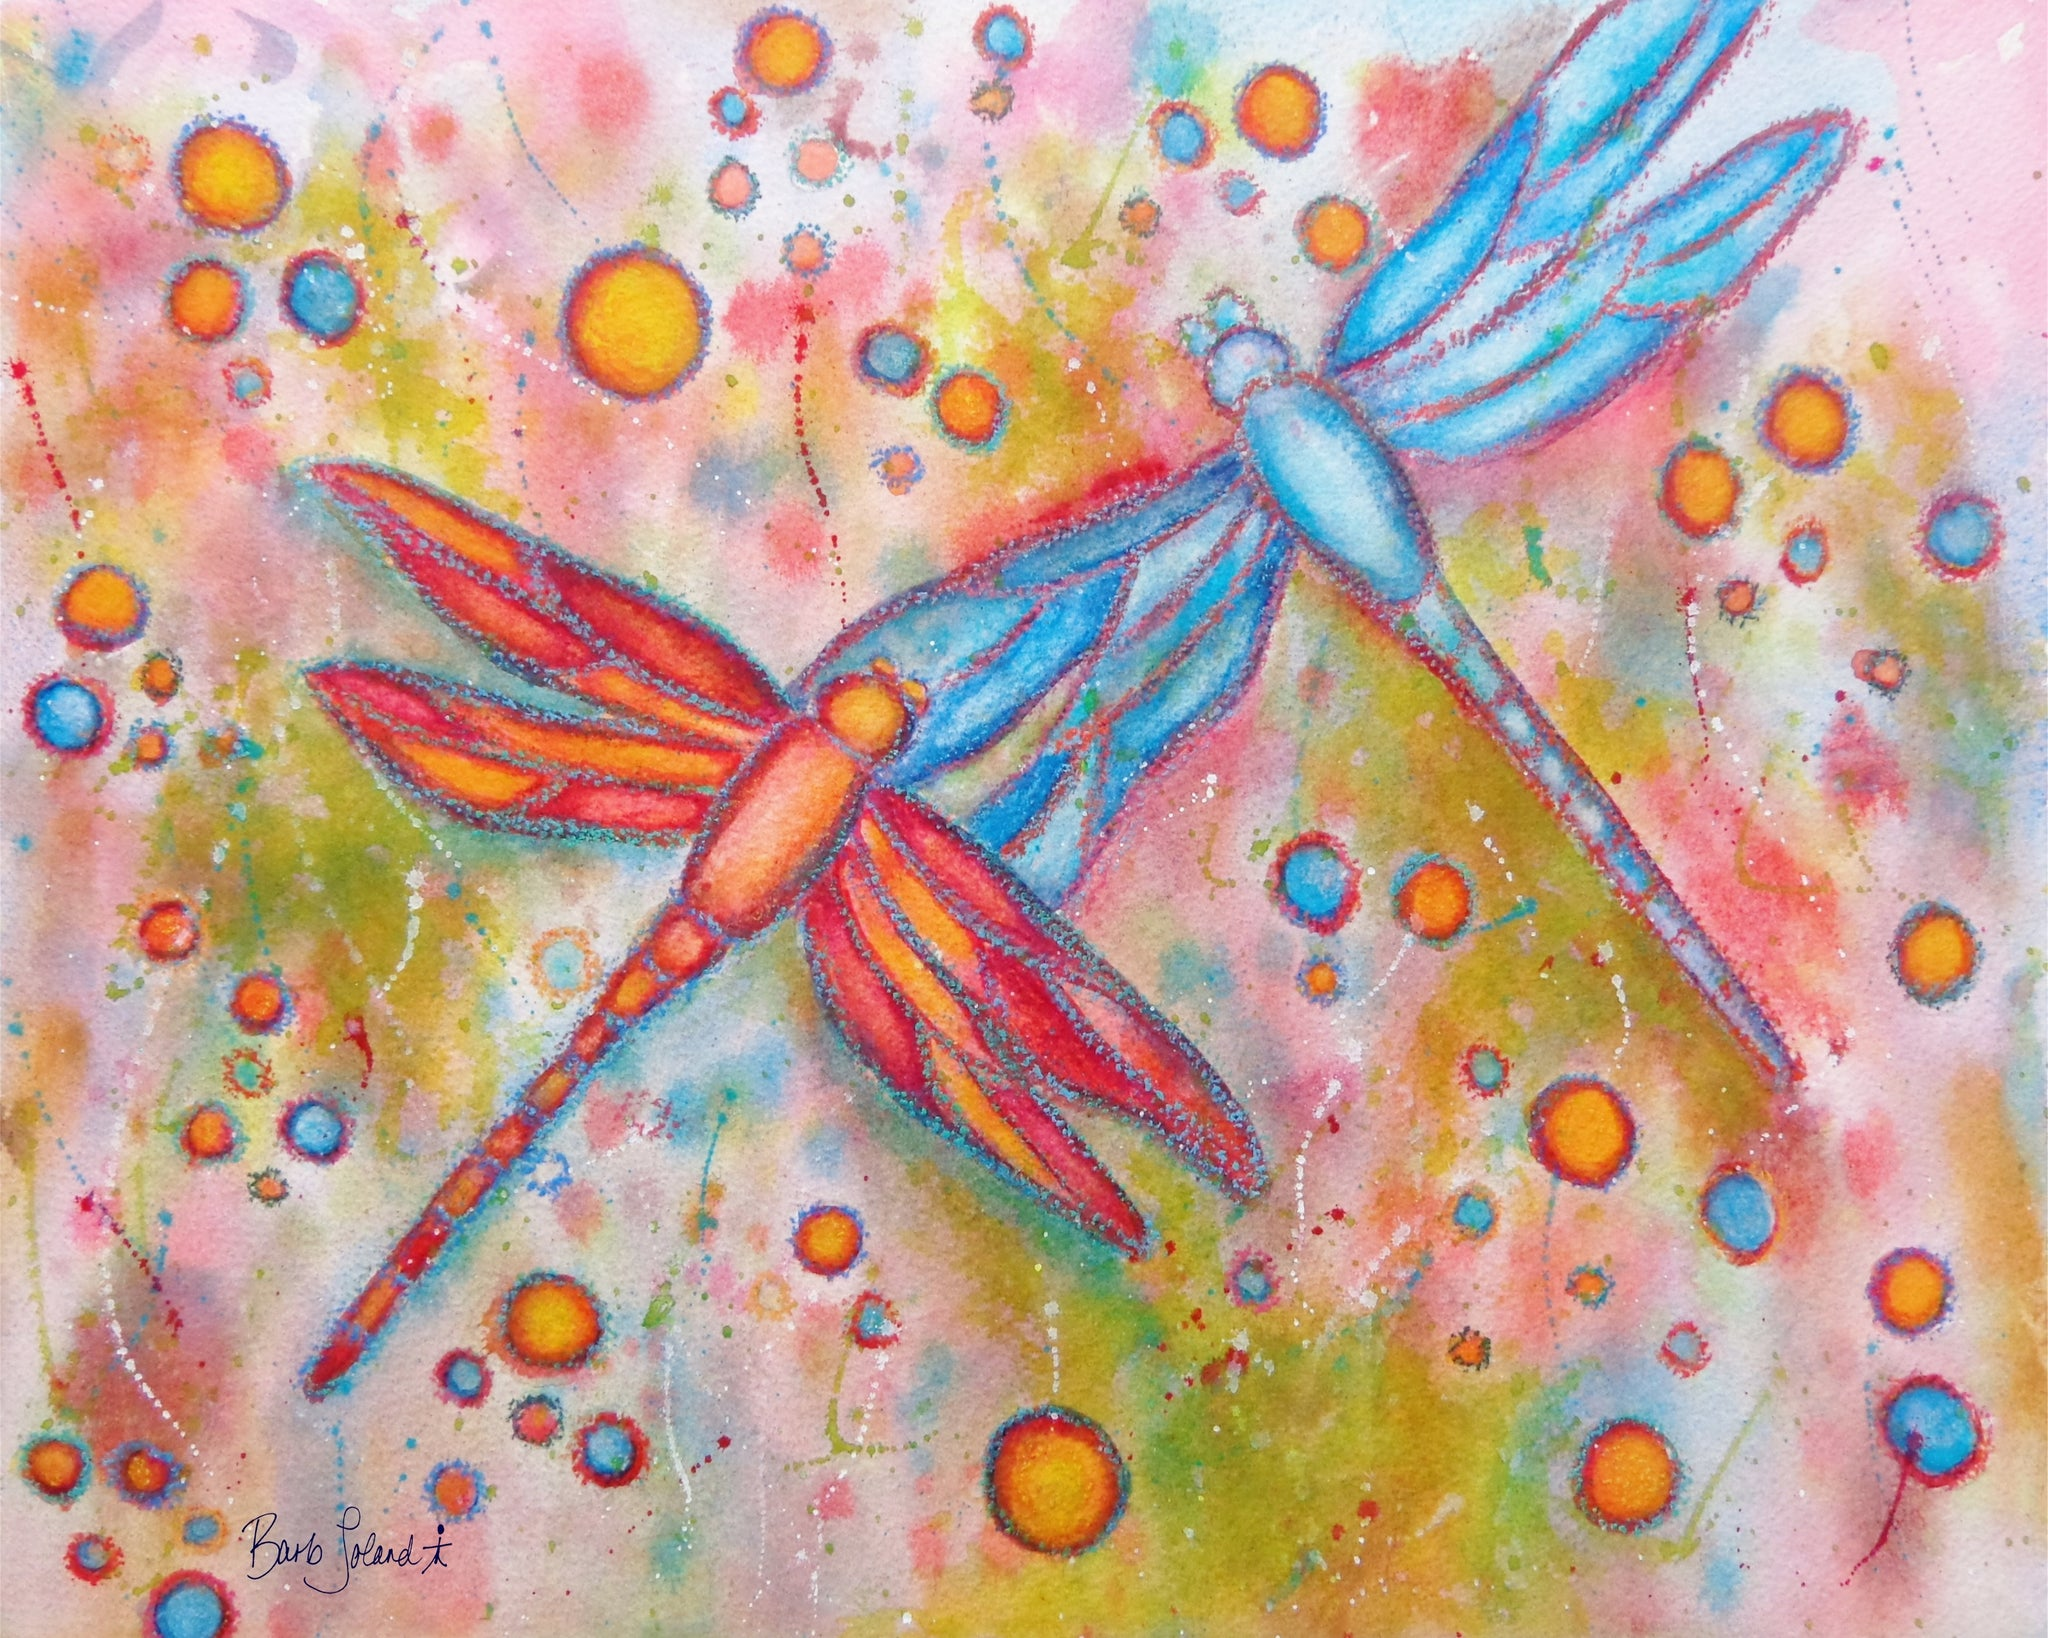 A watercolor & oil pastel painting of 2 dragonflies dancing in the breeze of a summer's day.